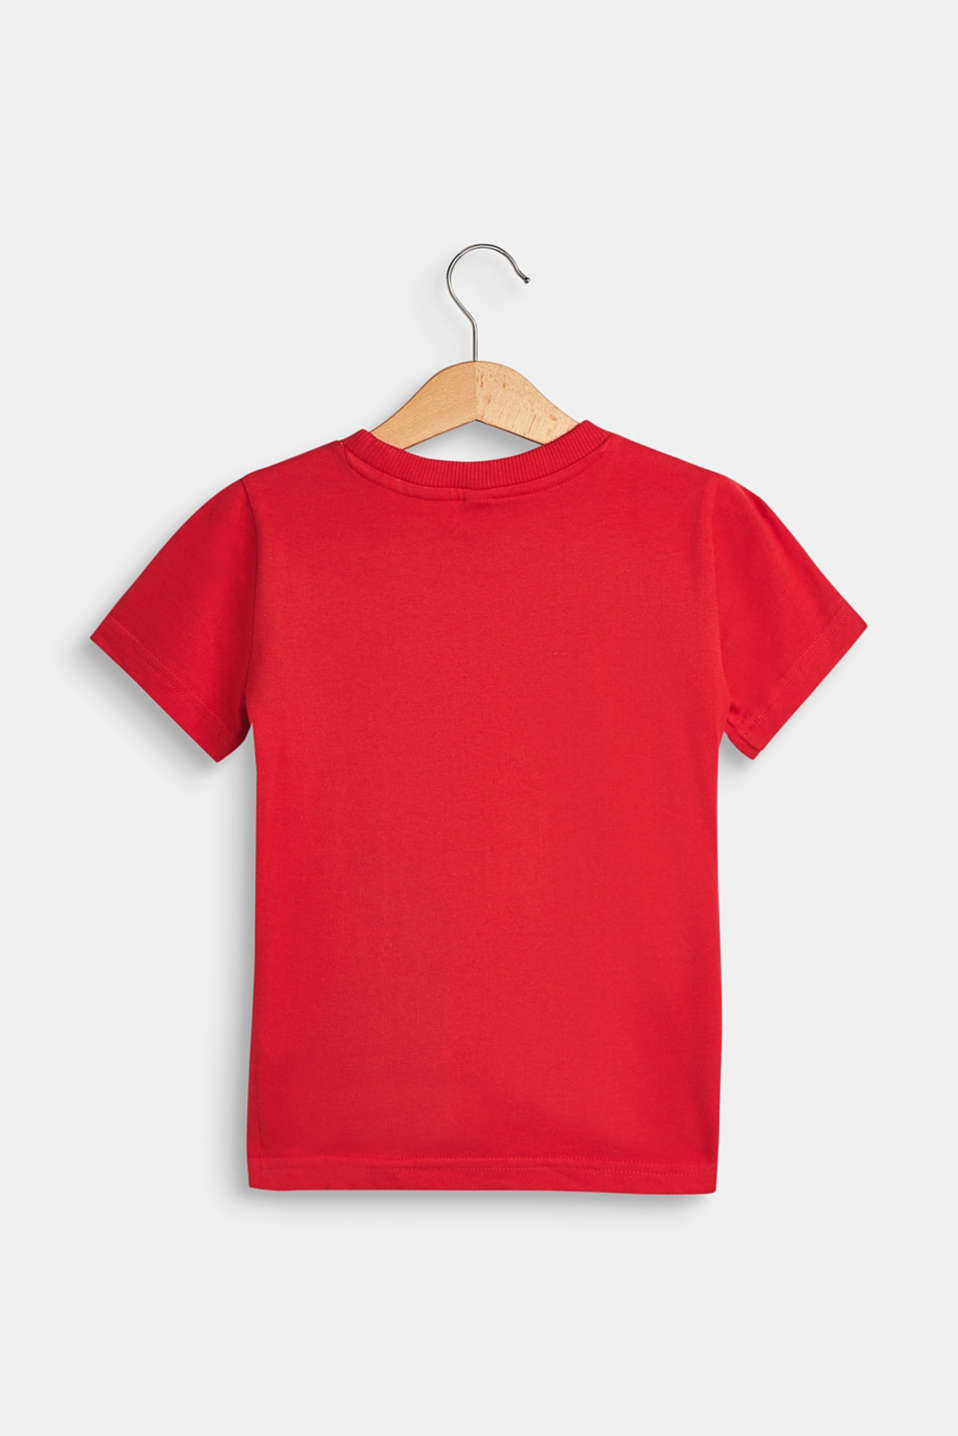 T-shirt with a motif pocket, 100% cotton, RED, detail image number 1